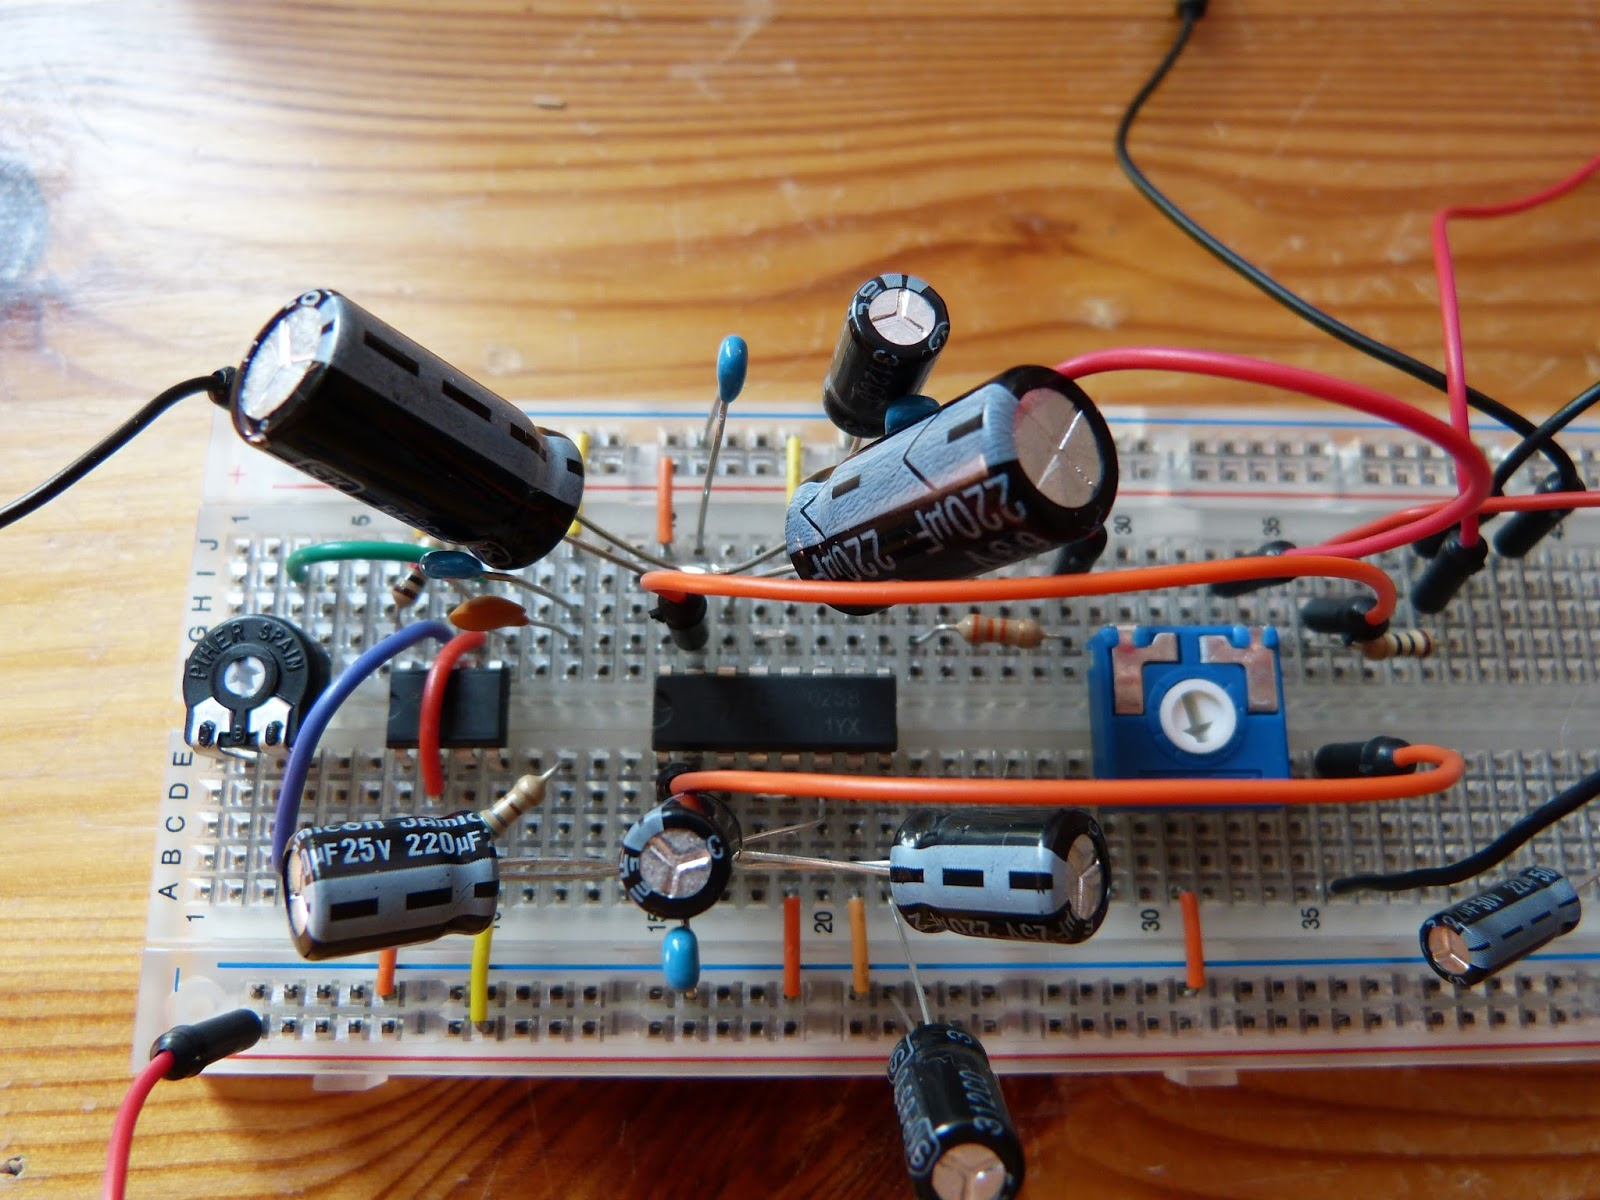 Makeelectronics Archives Homehack Fig5 Circuit Diagram Of 555 Timer In Astable Mode A Closer Look At The Breadboard With On Far Left 100k Trimmer Next To It Middle Tea2025b Amplifier And